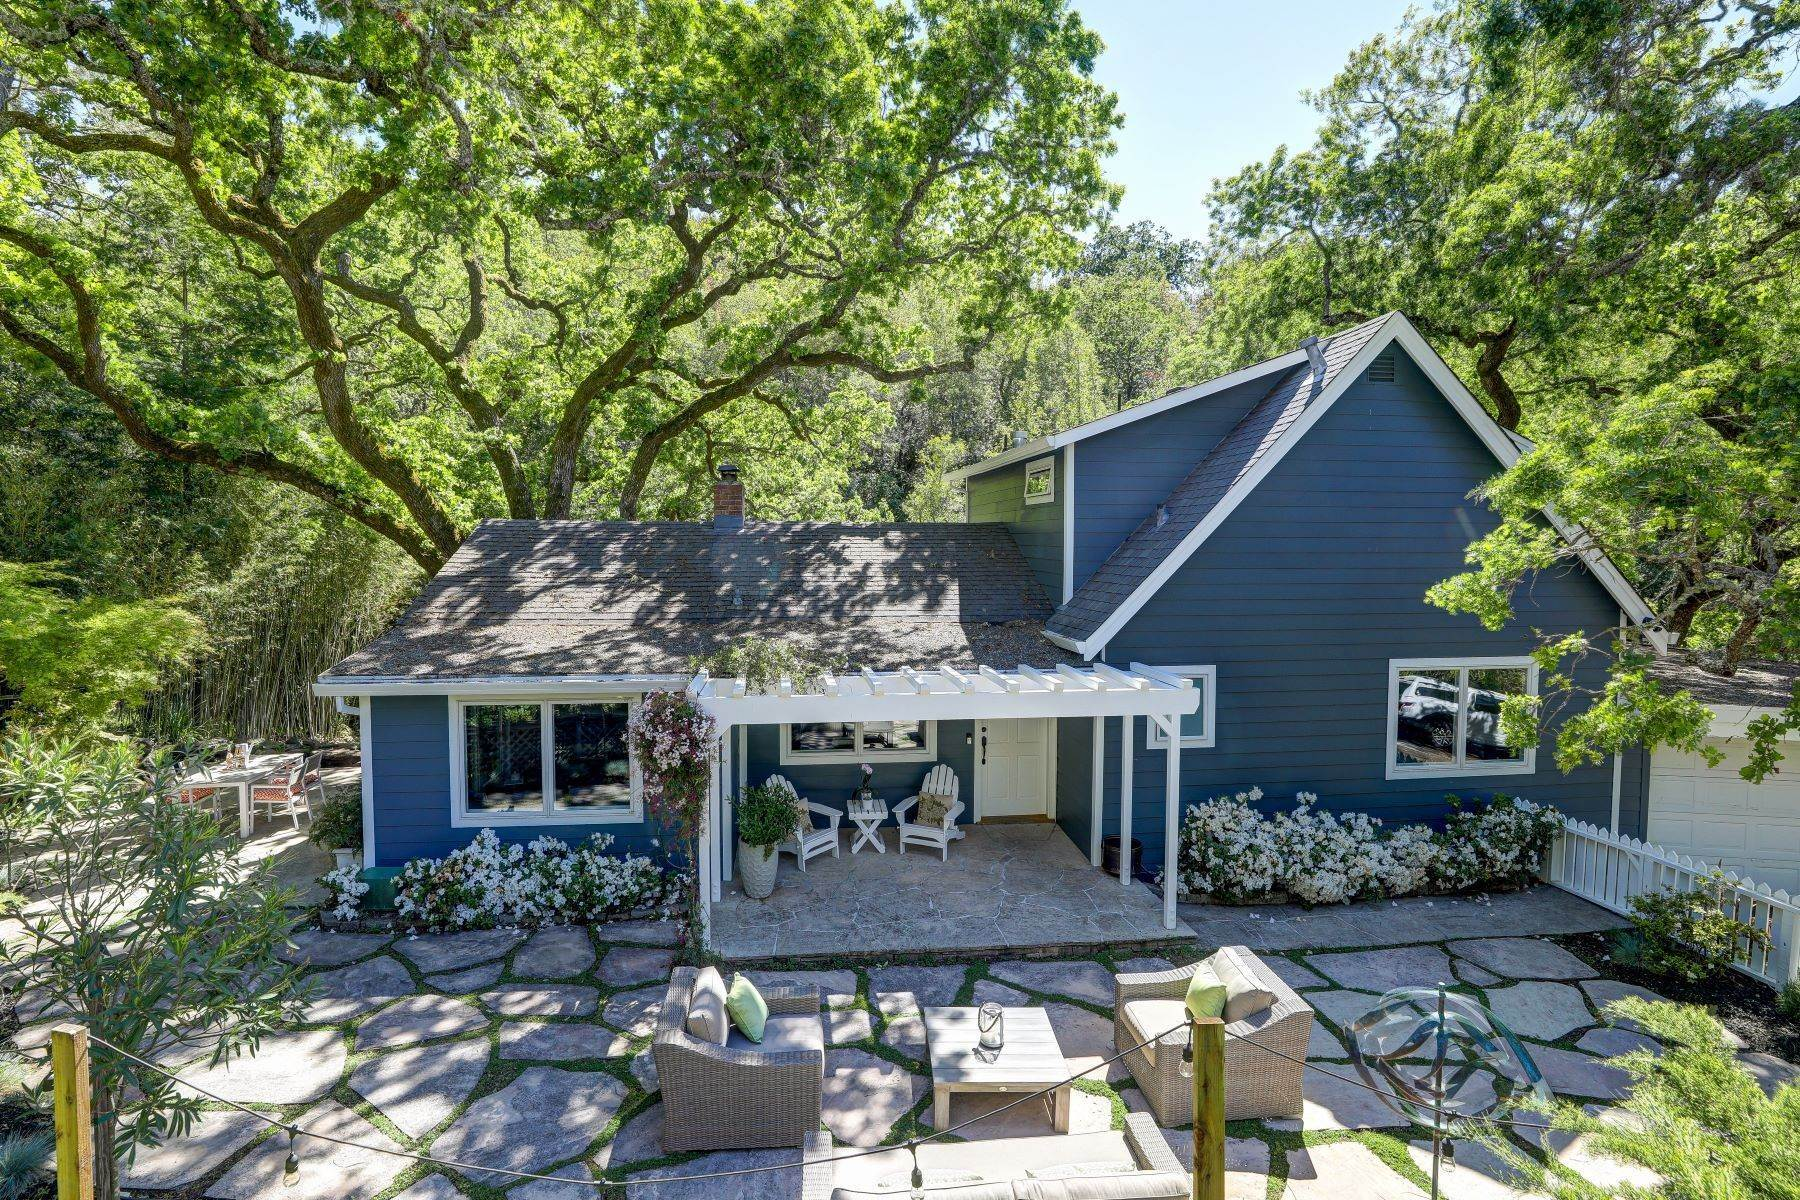 Single Family Homes for Sale at The Perfect Country Retreat Minutes to Town 380 Oakcrest Road San Anselmo, California 94960 United States